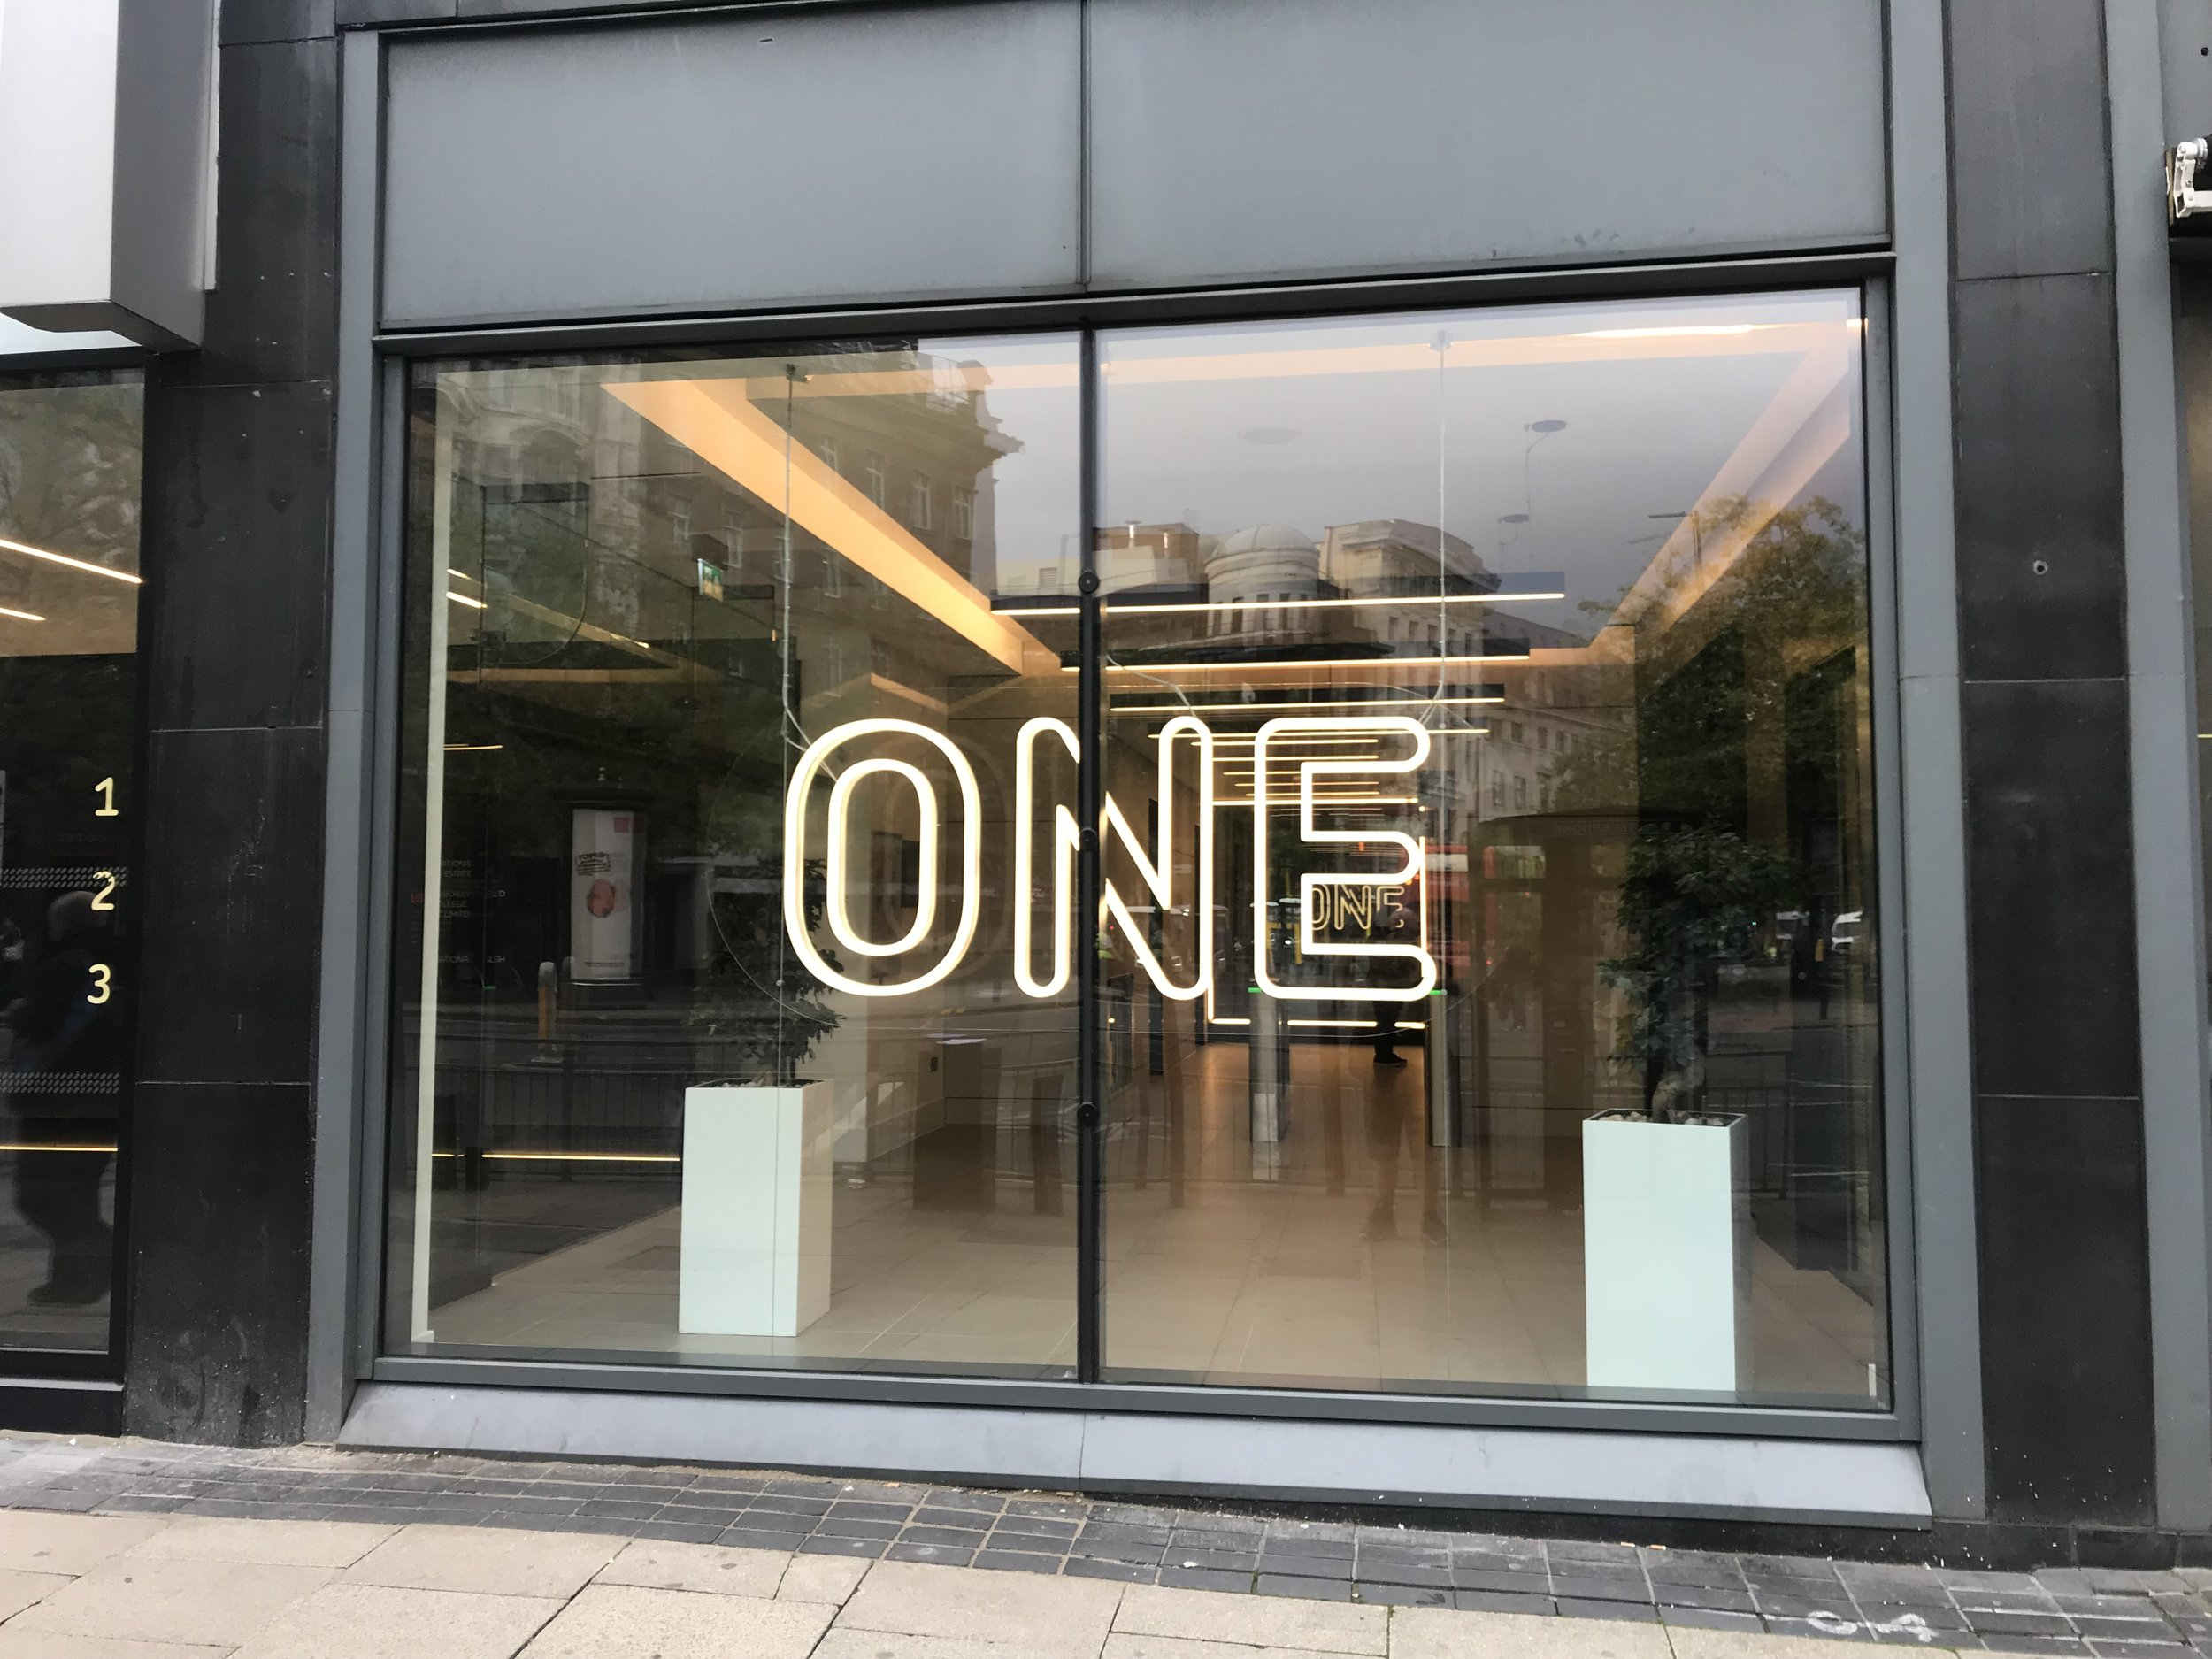 Neon Effect LED Lettering.   Neon effect LED lettering, duplicated and fixed back to back in reverse to give the same effect either way you look at it - mounted to a clear acrylic sheet to give the illusion that the sign is floating.